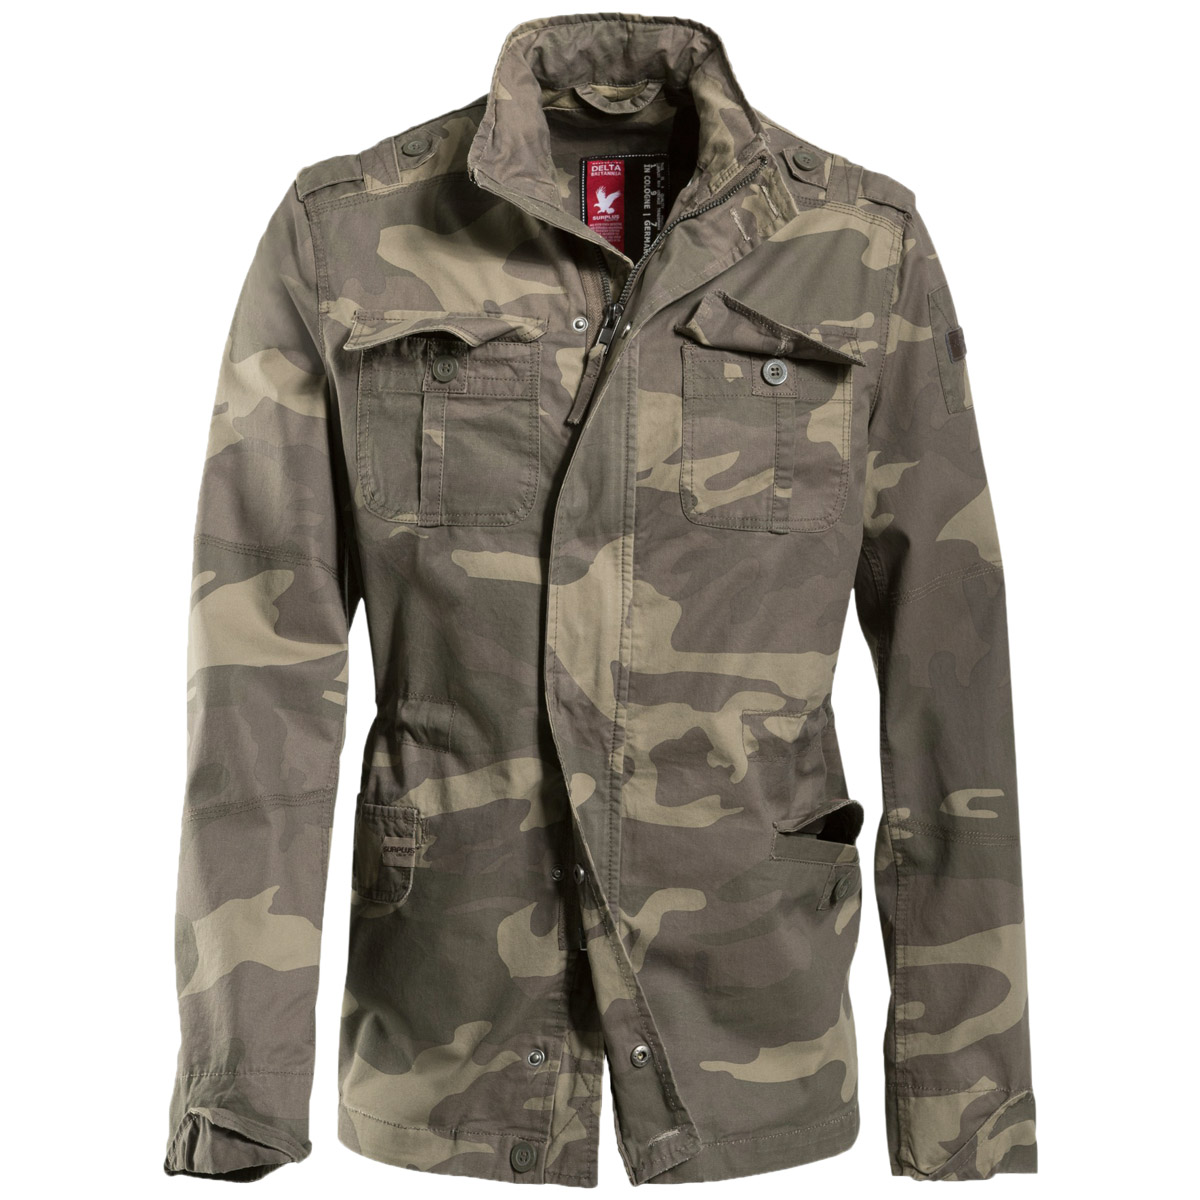 Create a classic casual look with military jackets from this amazing selection at Old Navy. Discover Amazing Designs. Browse military jackets from this fantastic selection at Old Navy and find the perfect design for your look.